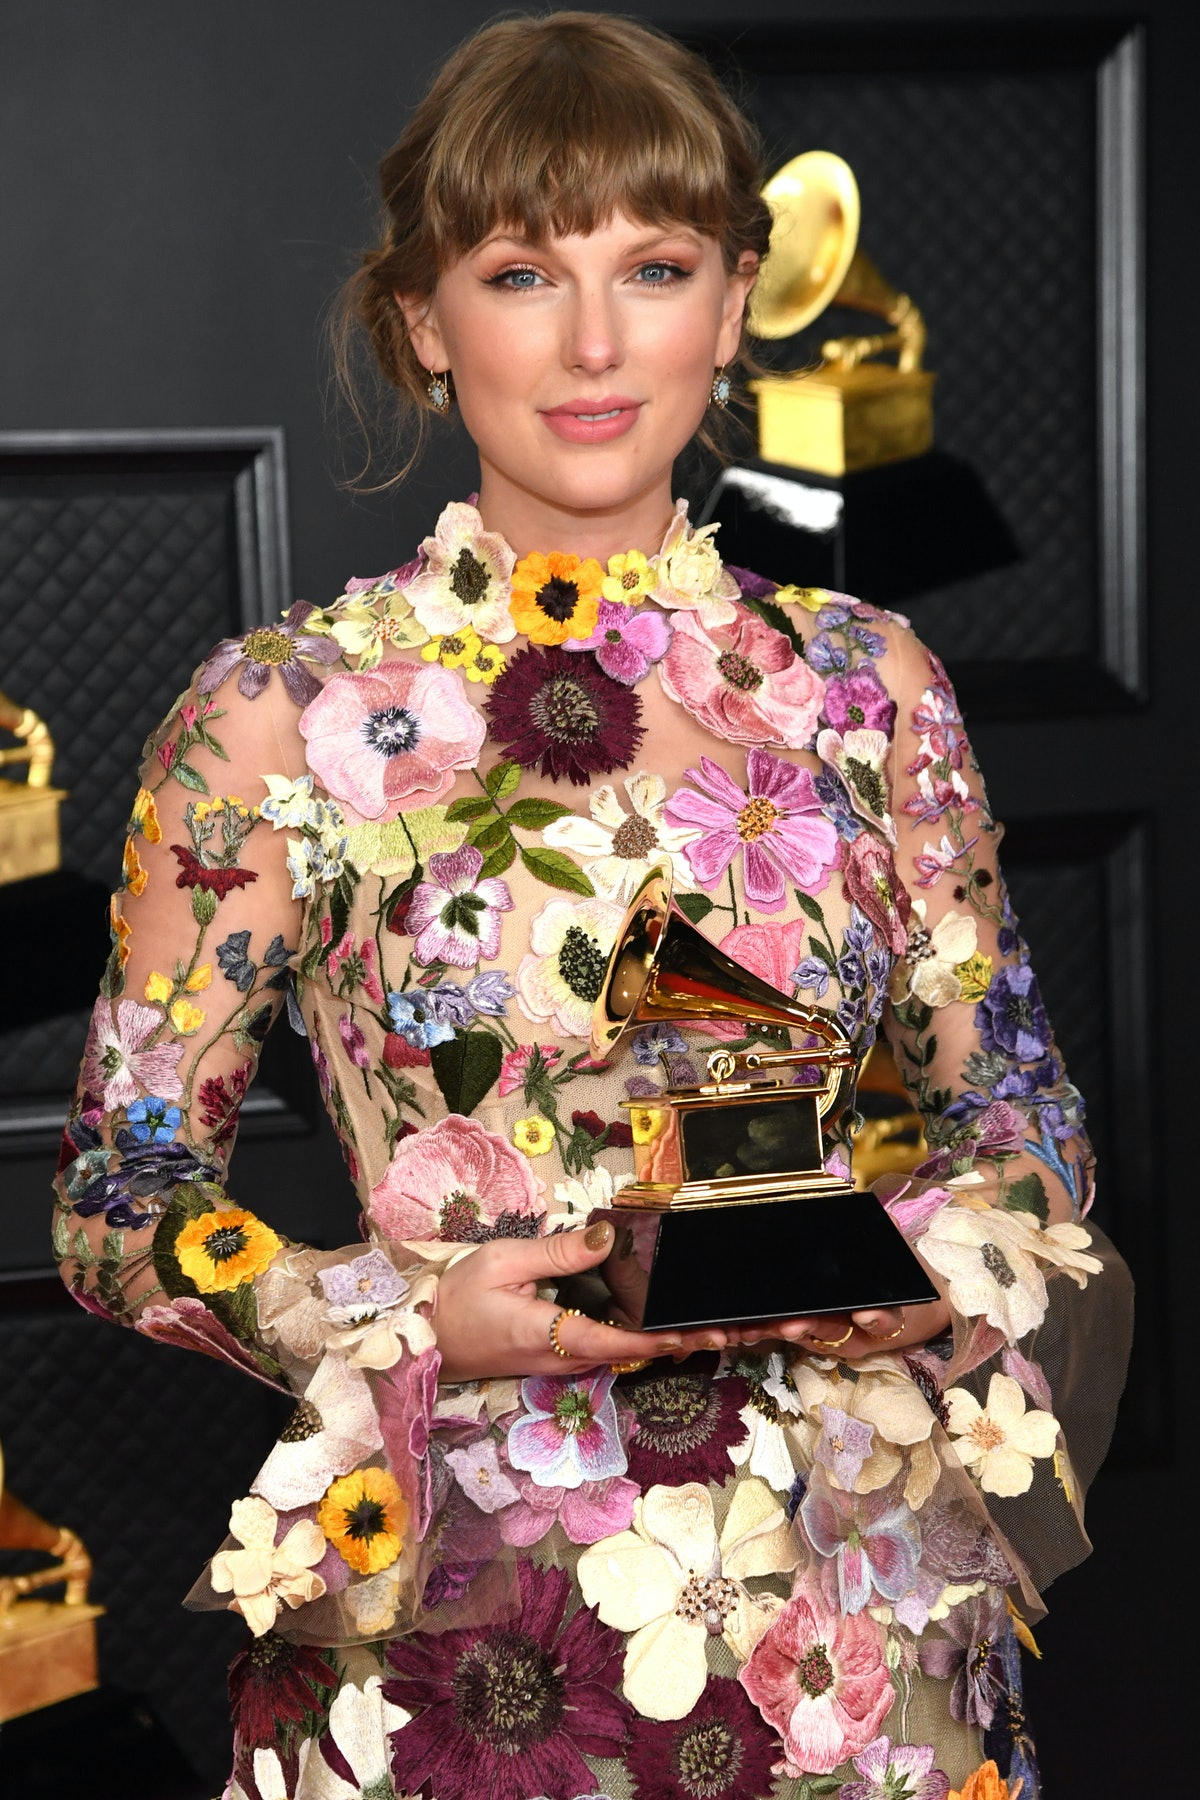 LOS ANGELES, CALIFORNIA - MARCH 14: Taylor Swift, winner of the Album of the Year award for 'Folklor...